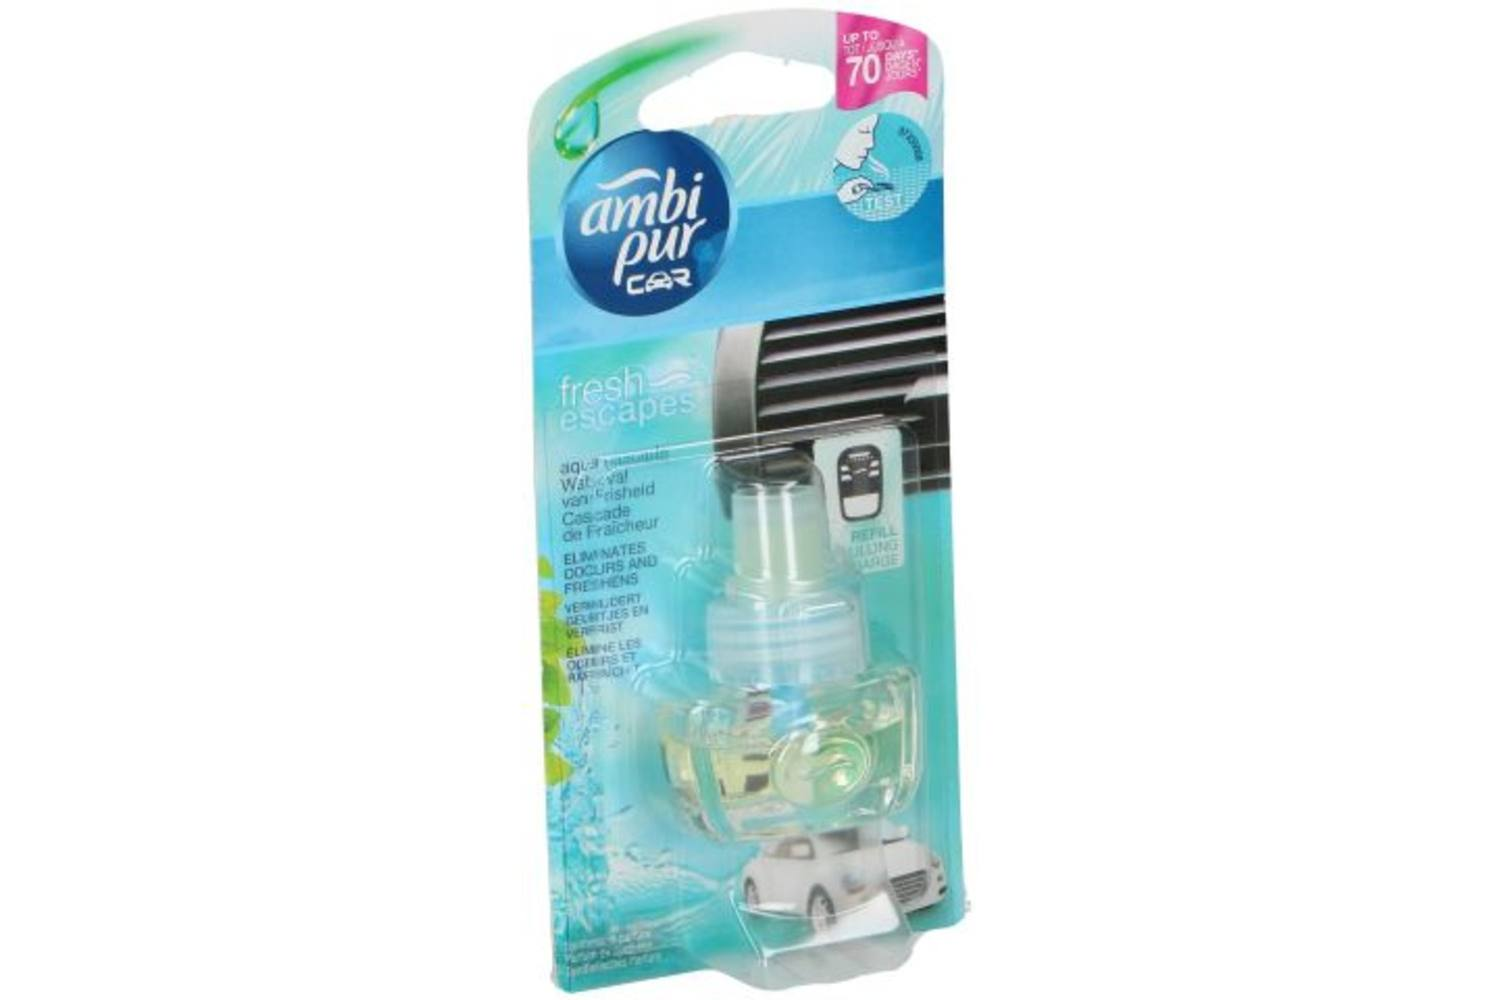 Air freshener refill, Ambipur, waterfall freshness 1